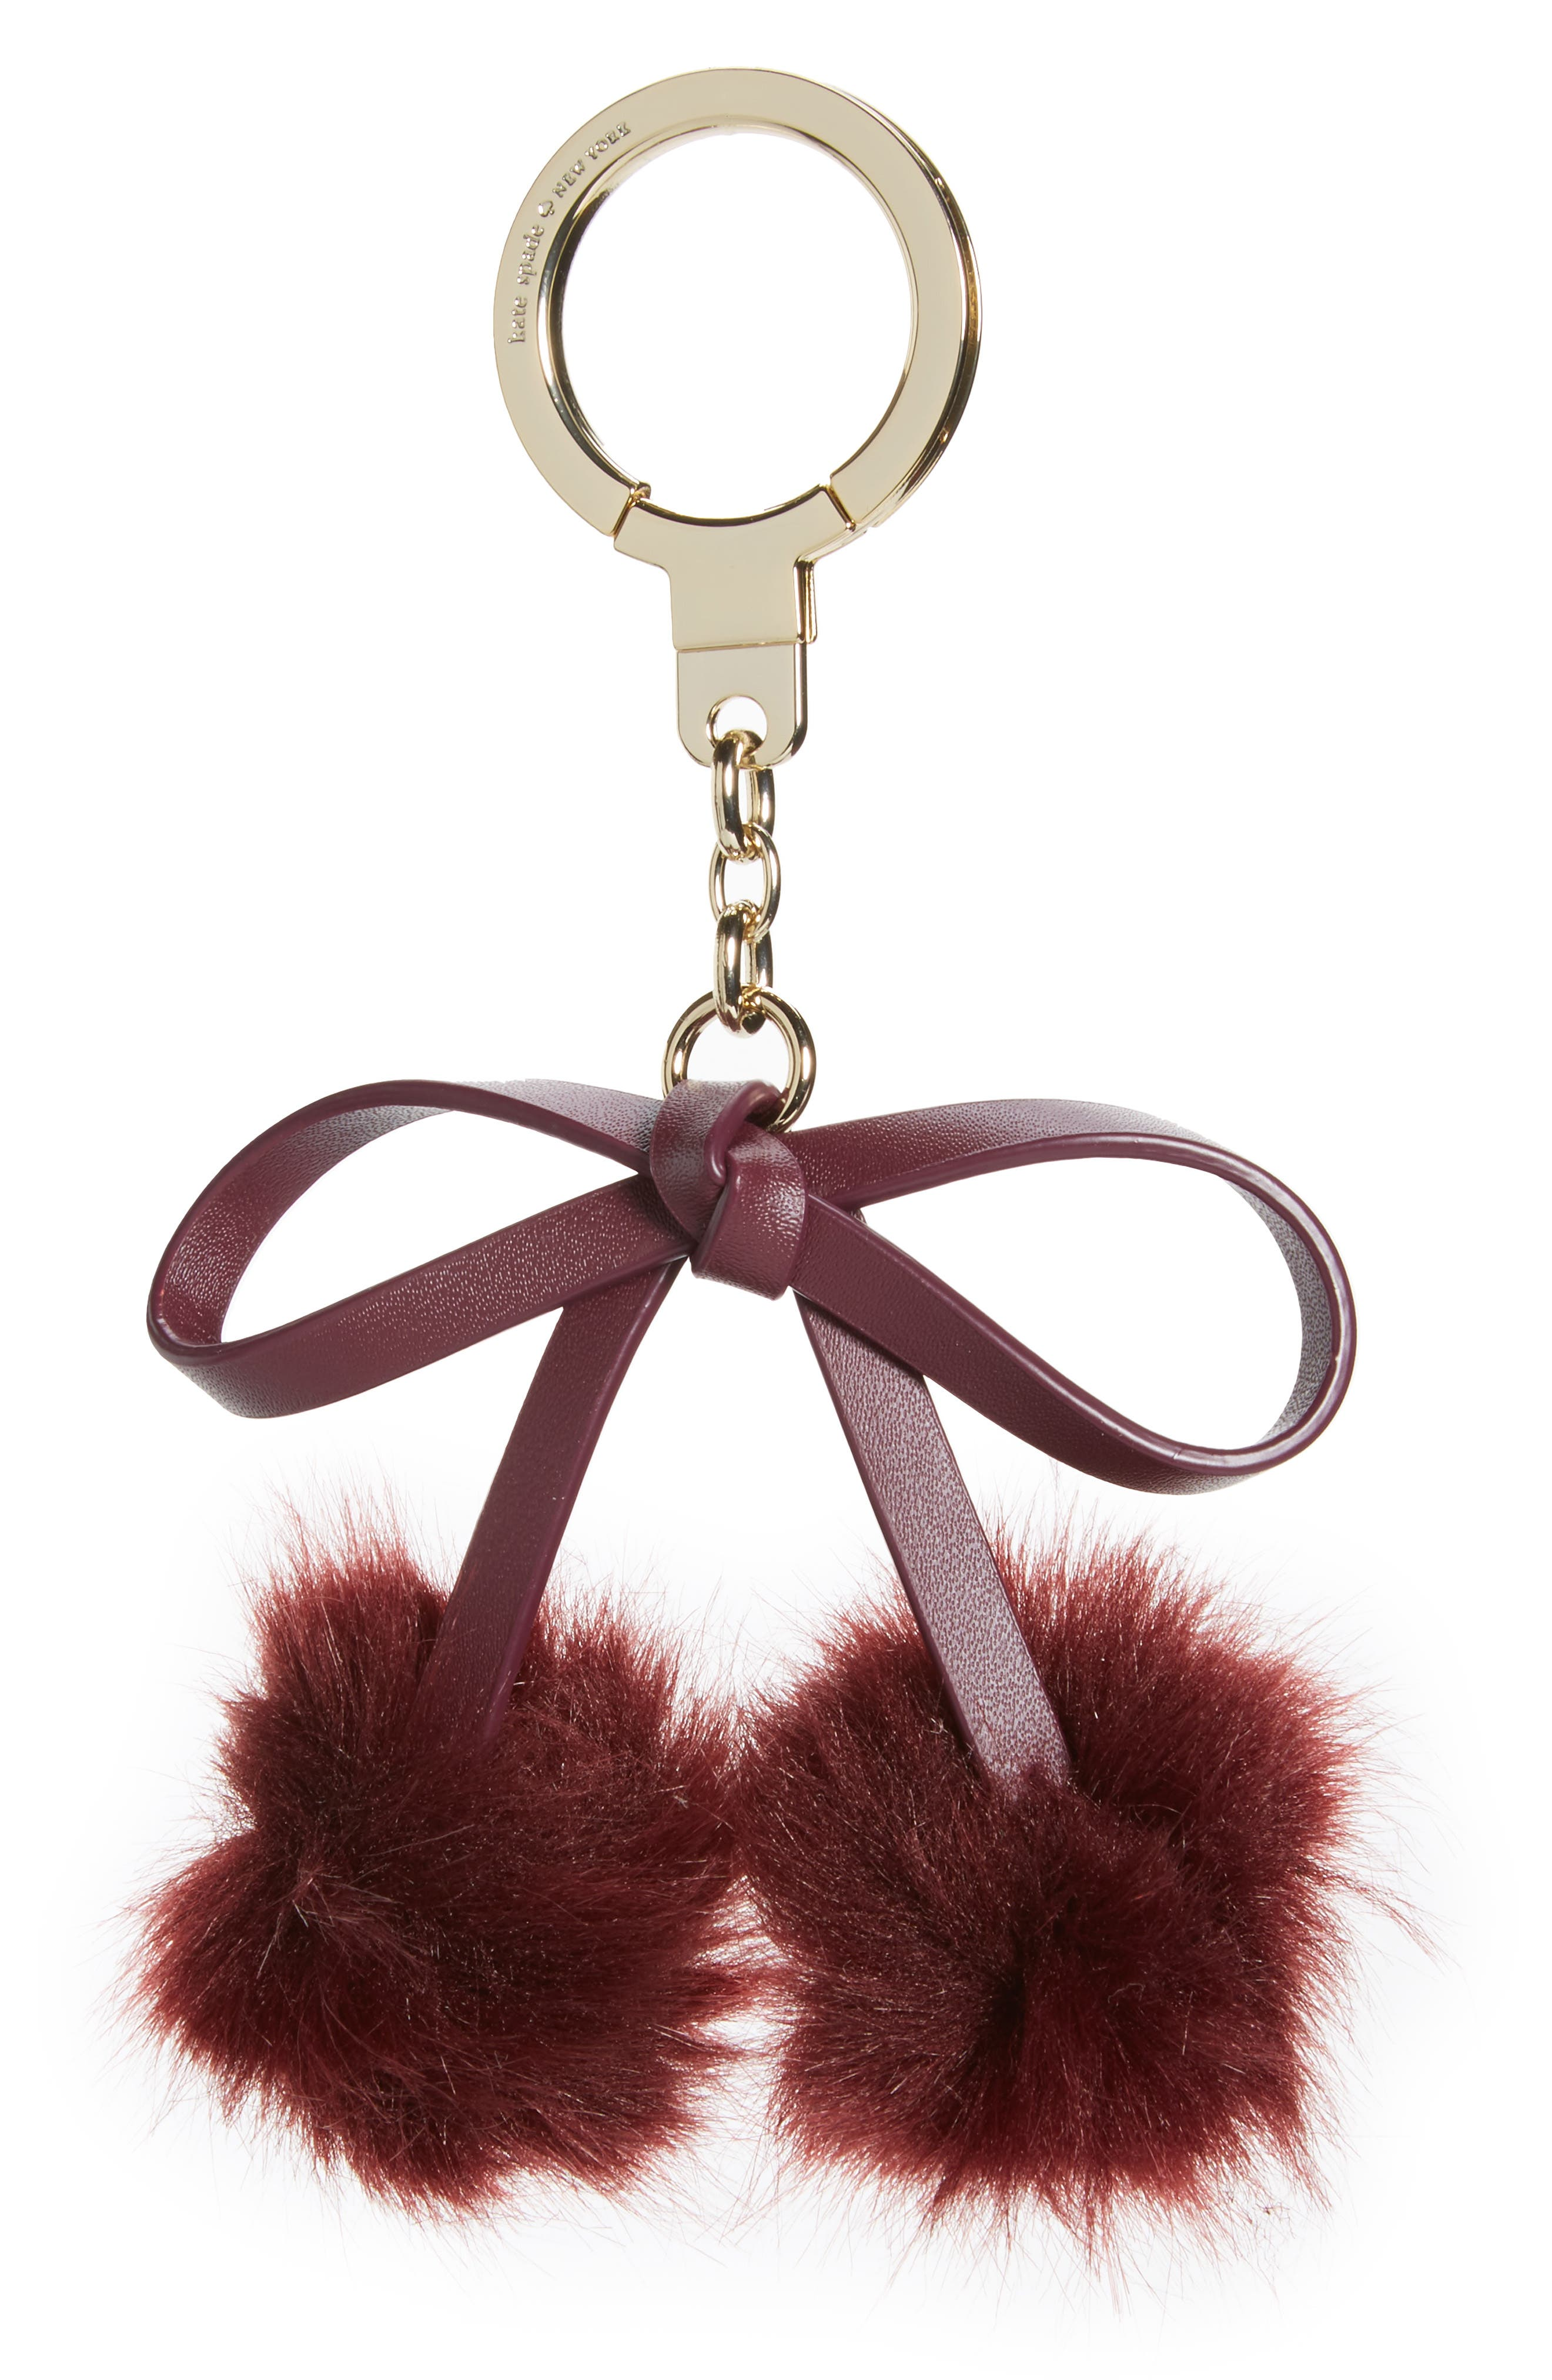 kate spade new york faux fur bow pom bag charm